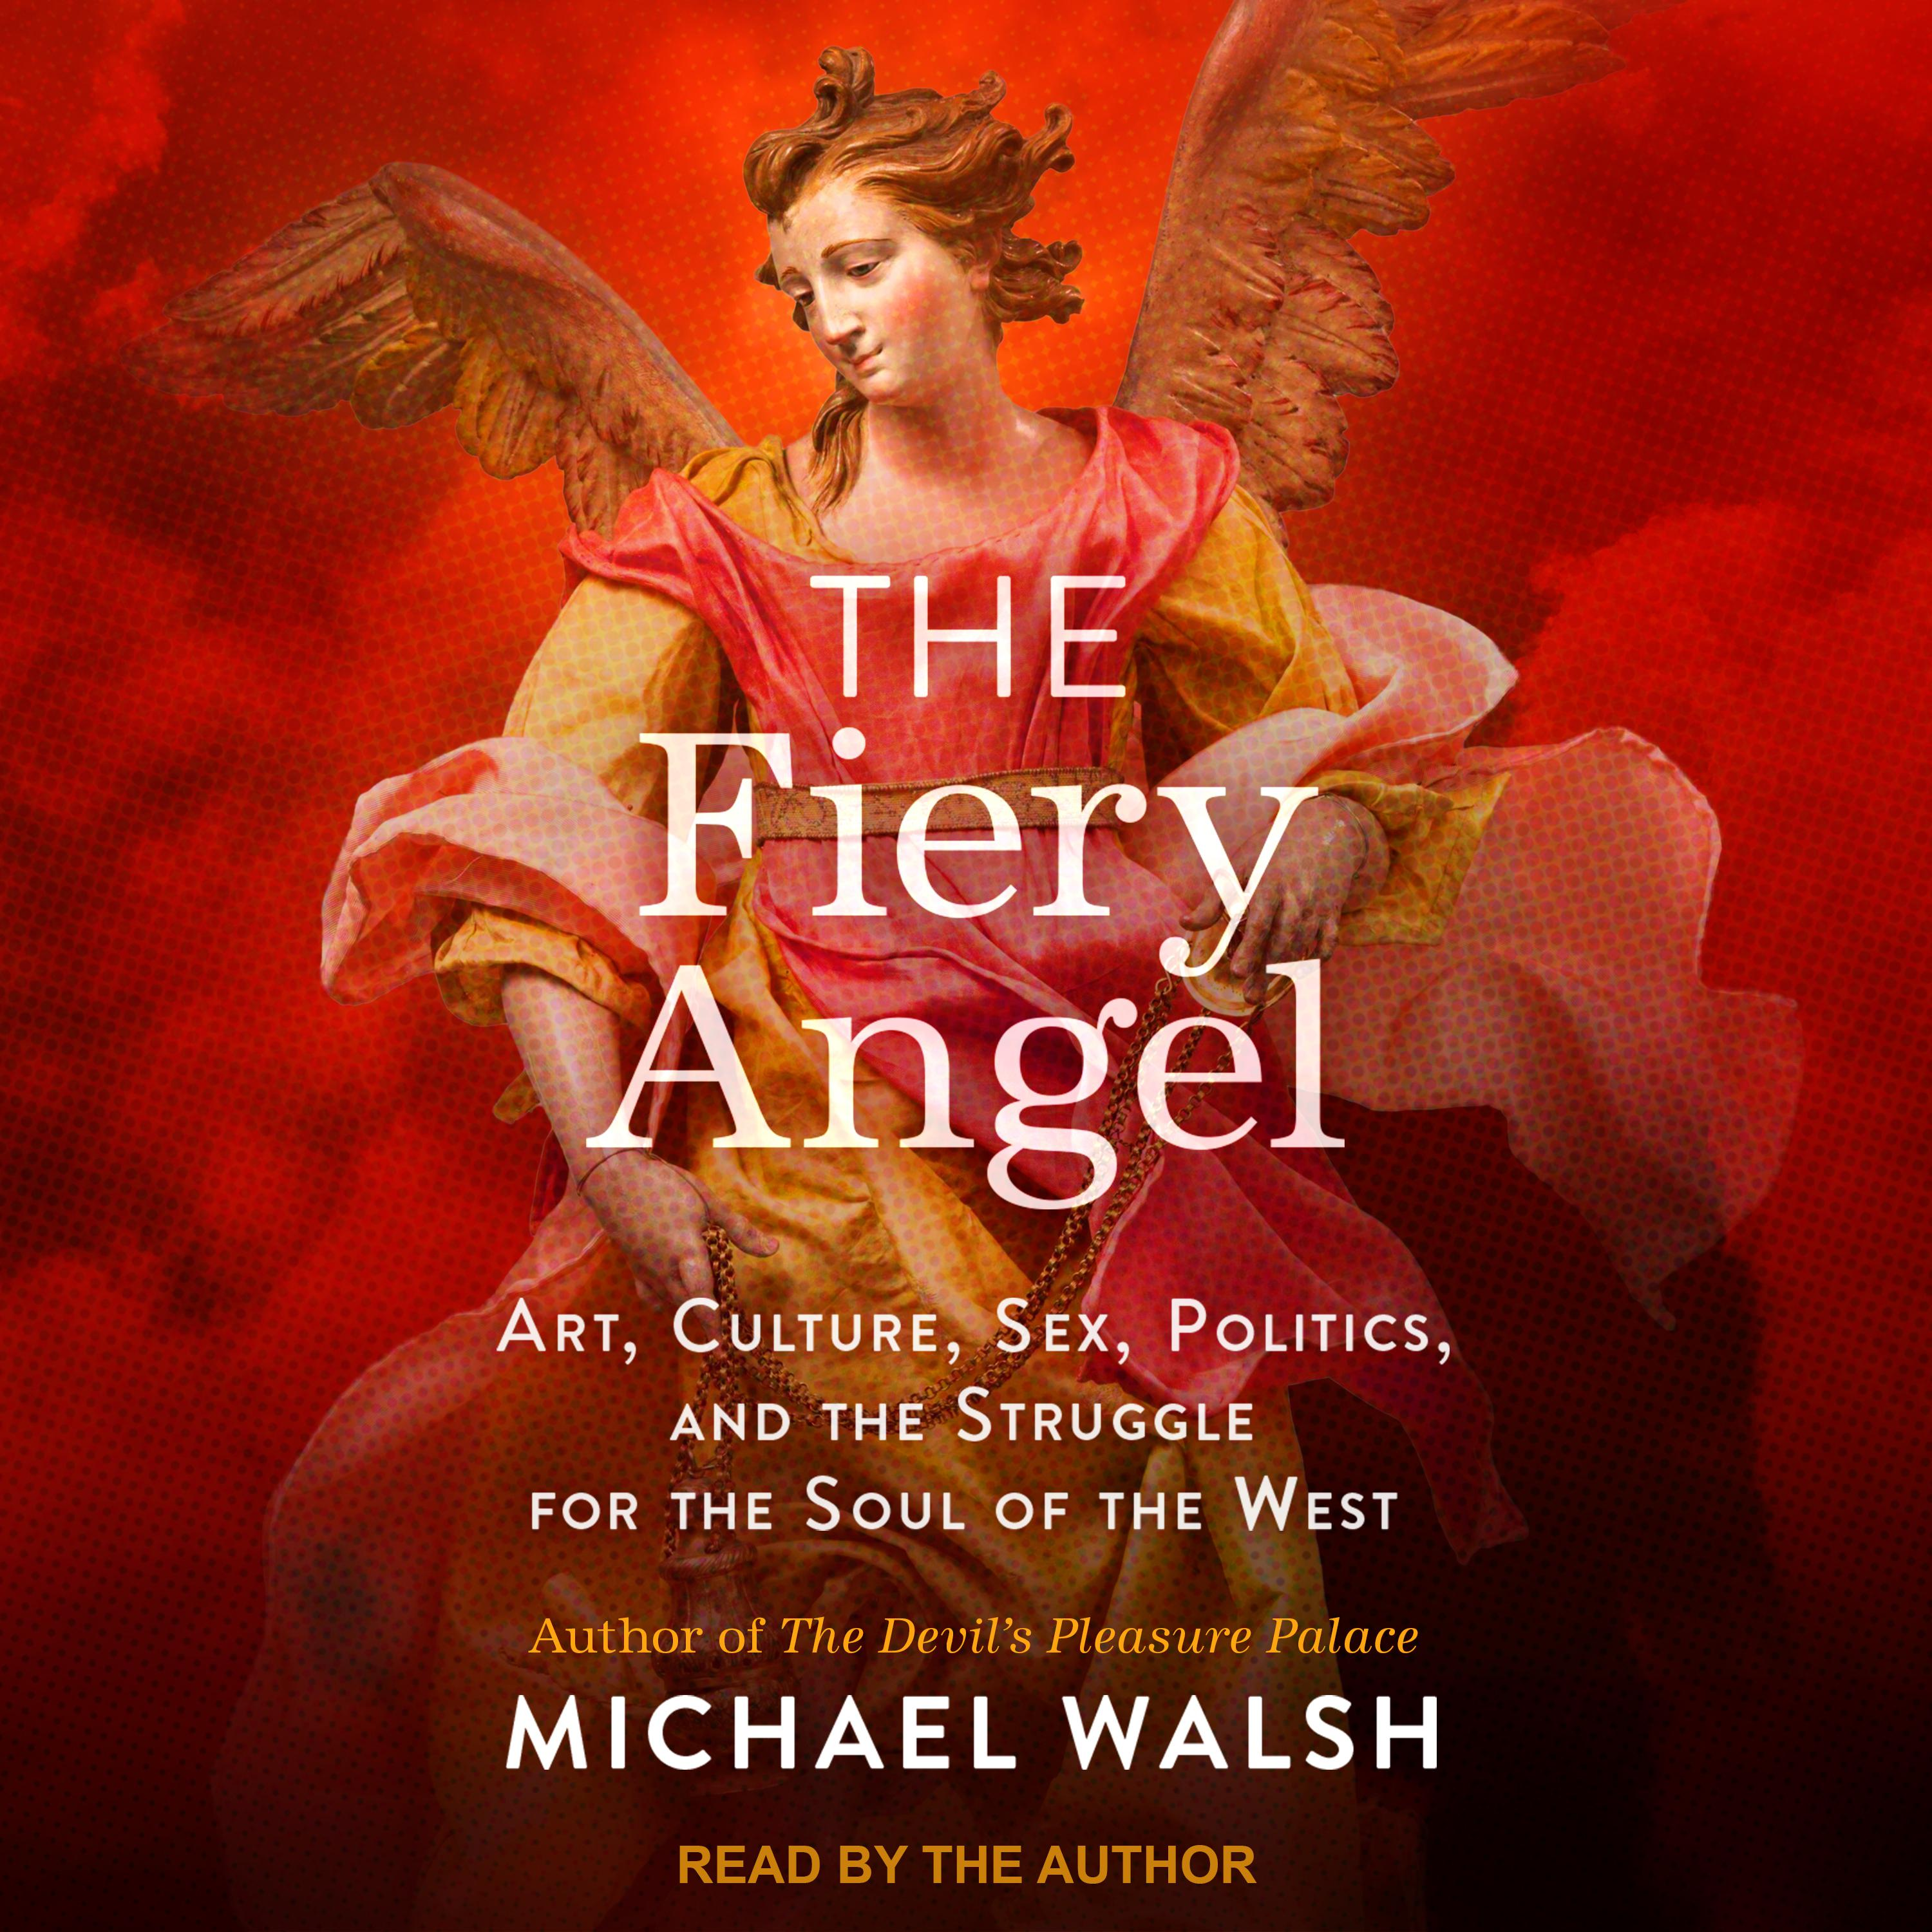 Printable The Fiery Angel: Art, Culture, Sex, Politics, and the Struggle for the Soul of the West Audiobook Cover Art